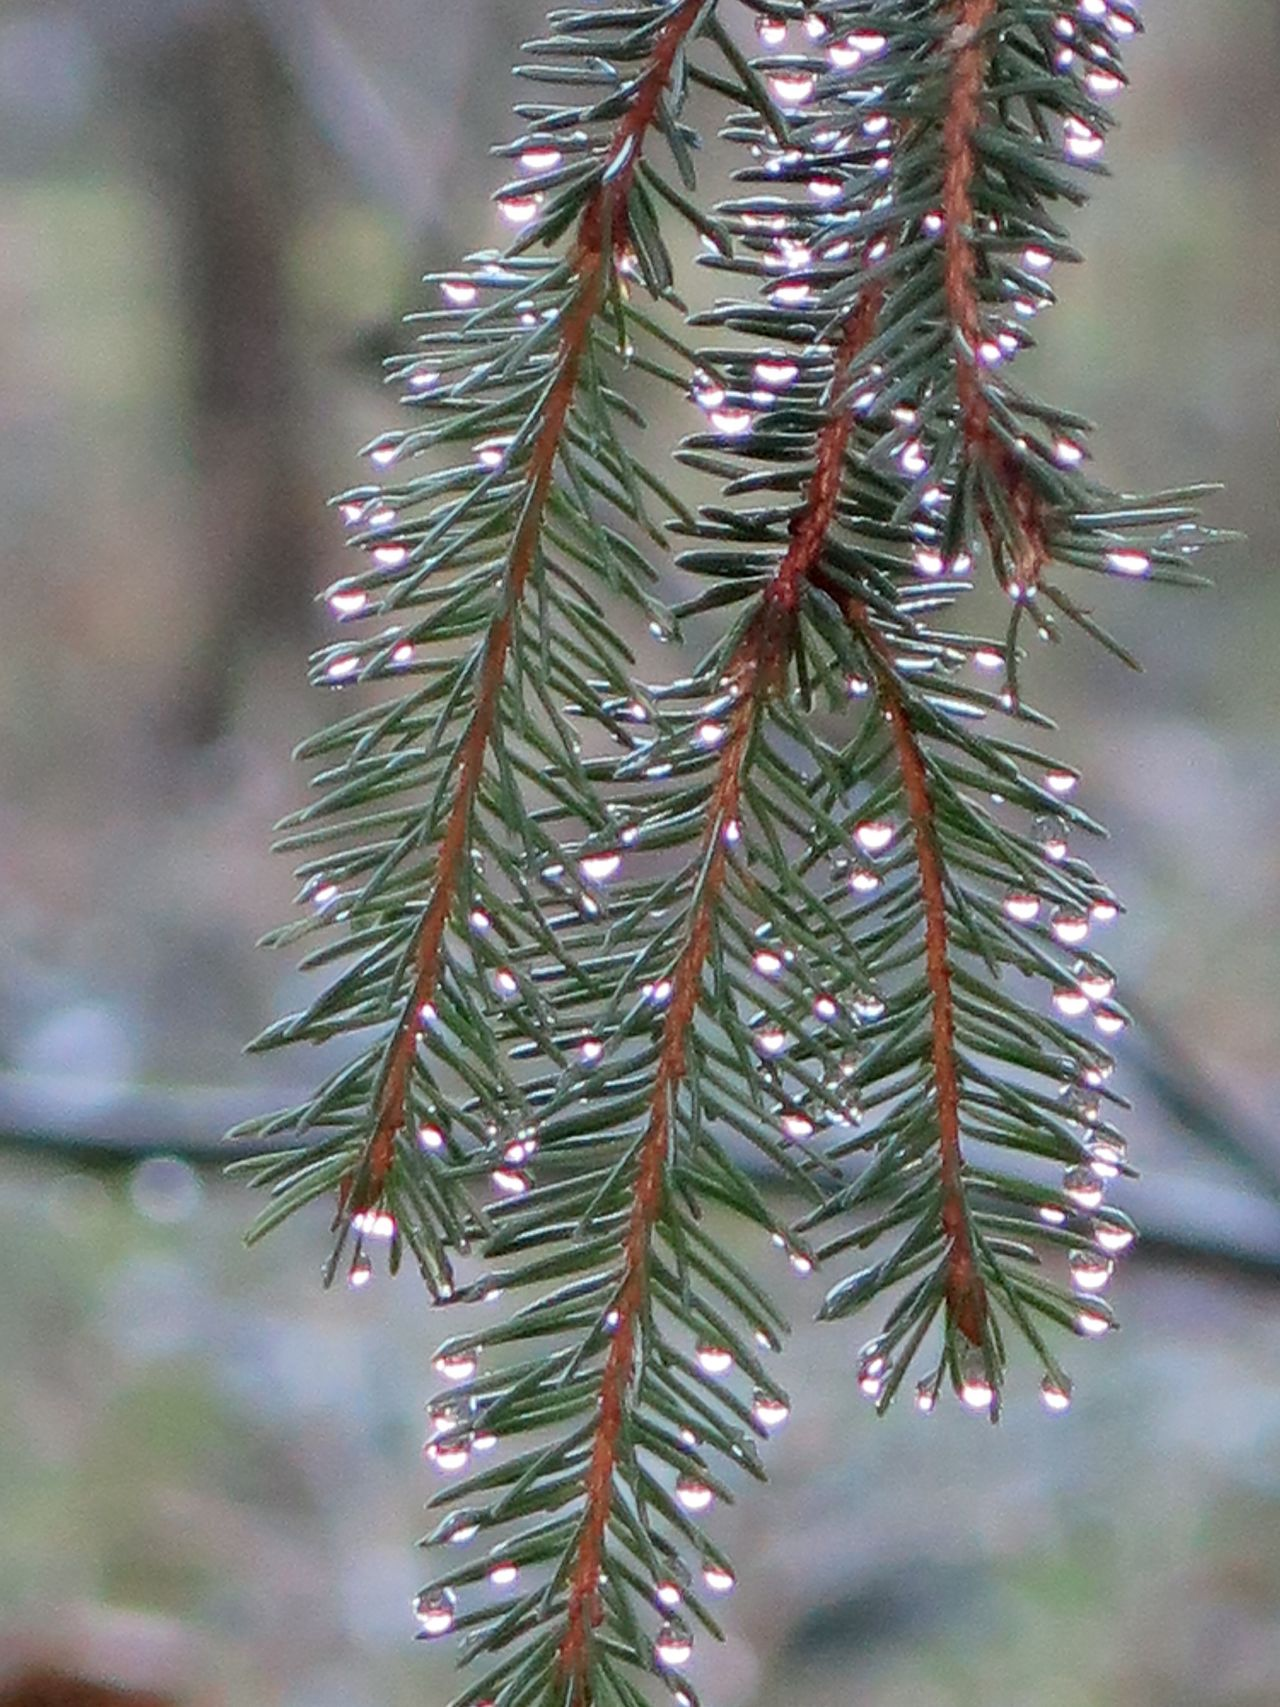 Forest Photography Nature Photography Nature Cold Days Naturelover Waterdrops